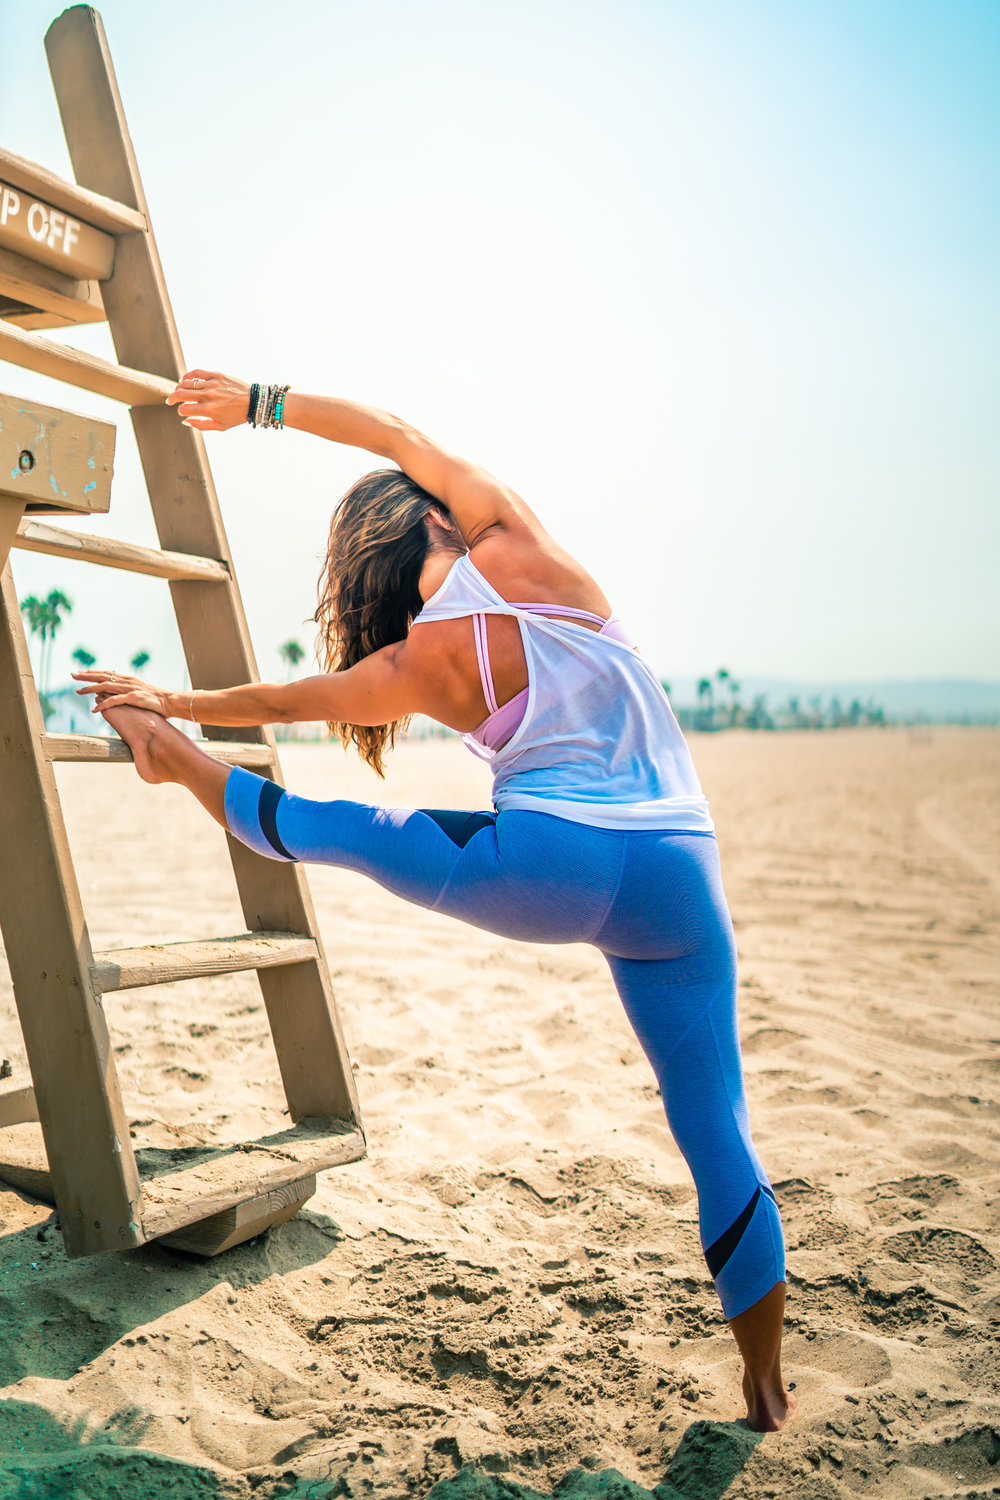 6_Full_Nicki-booty-camp-yoga-newport-beach-portraits_Joseph-Barber-Photography4296.jpg